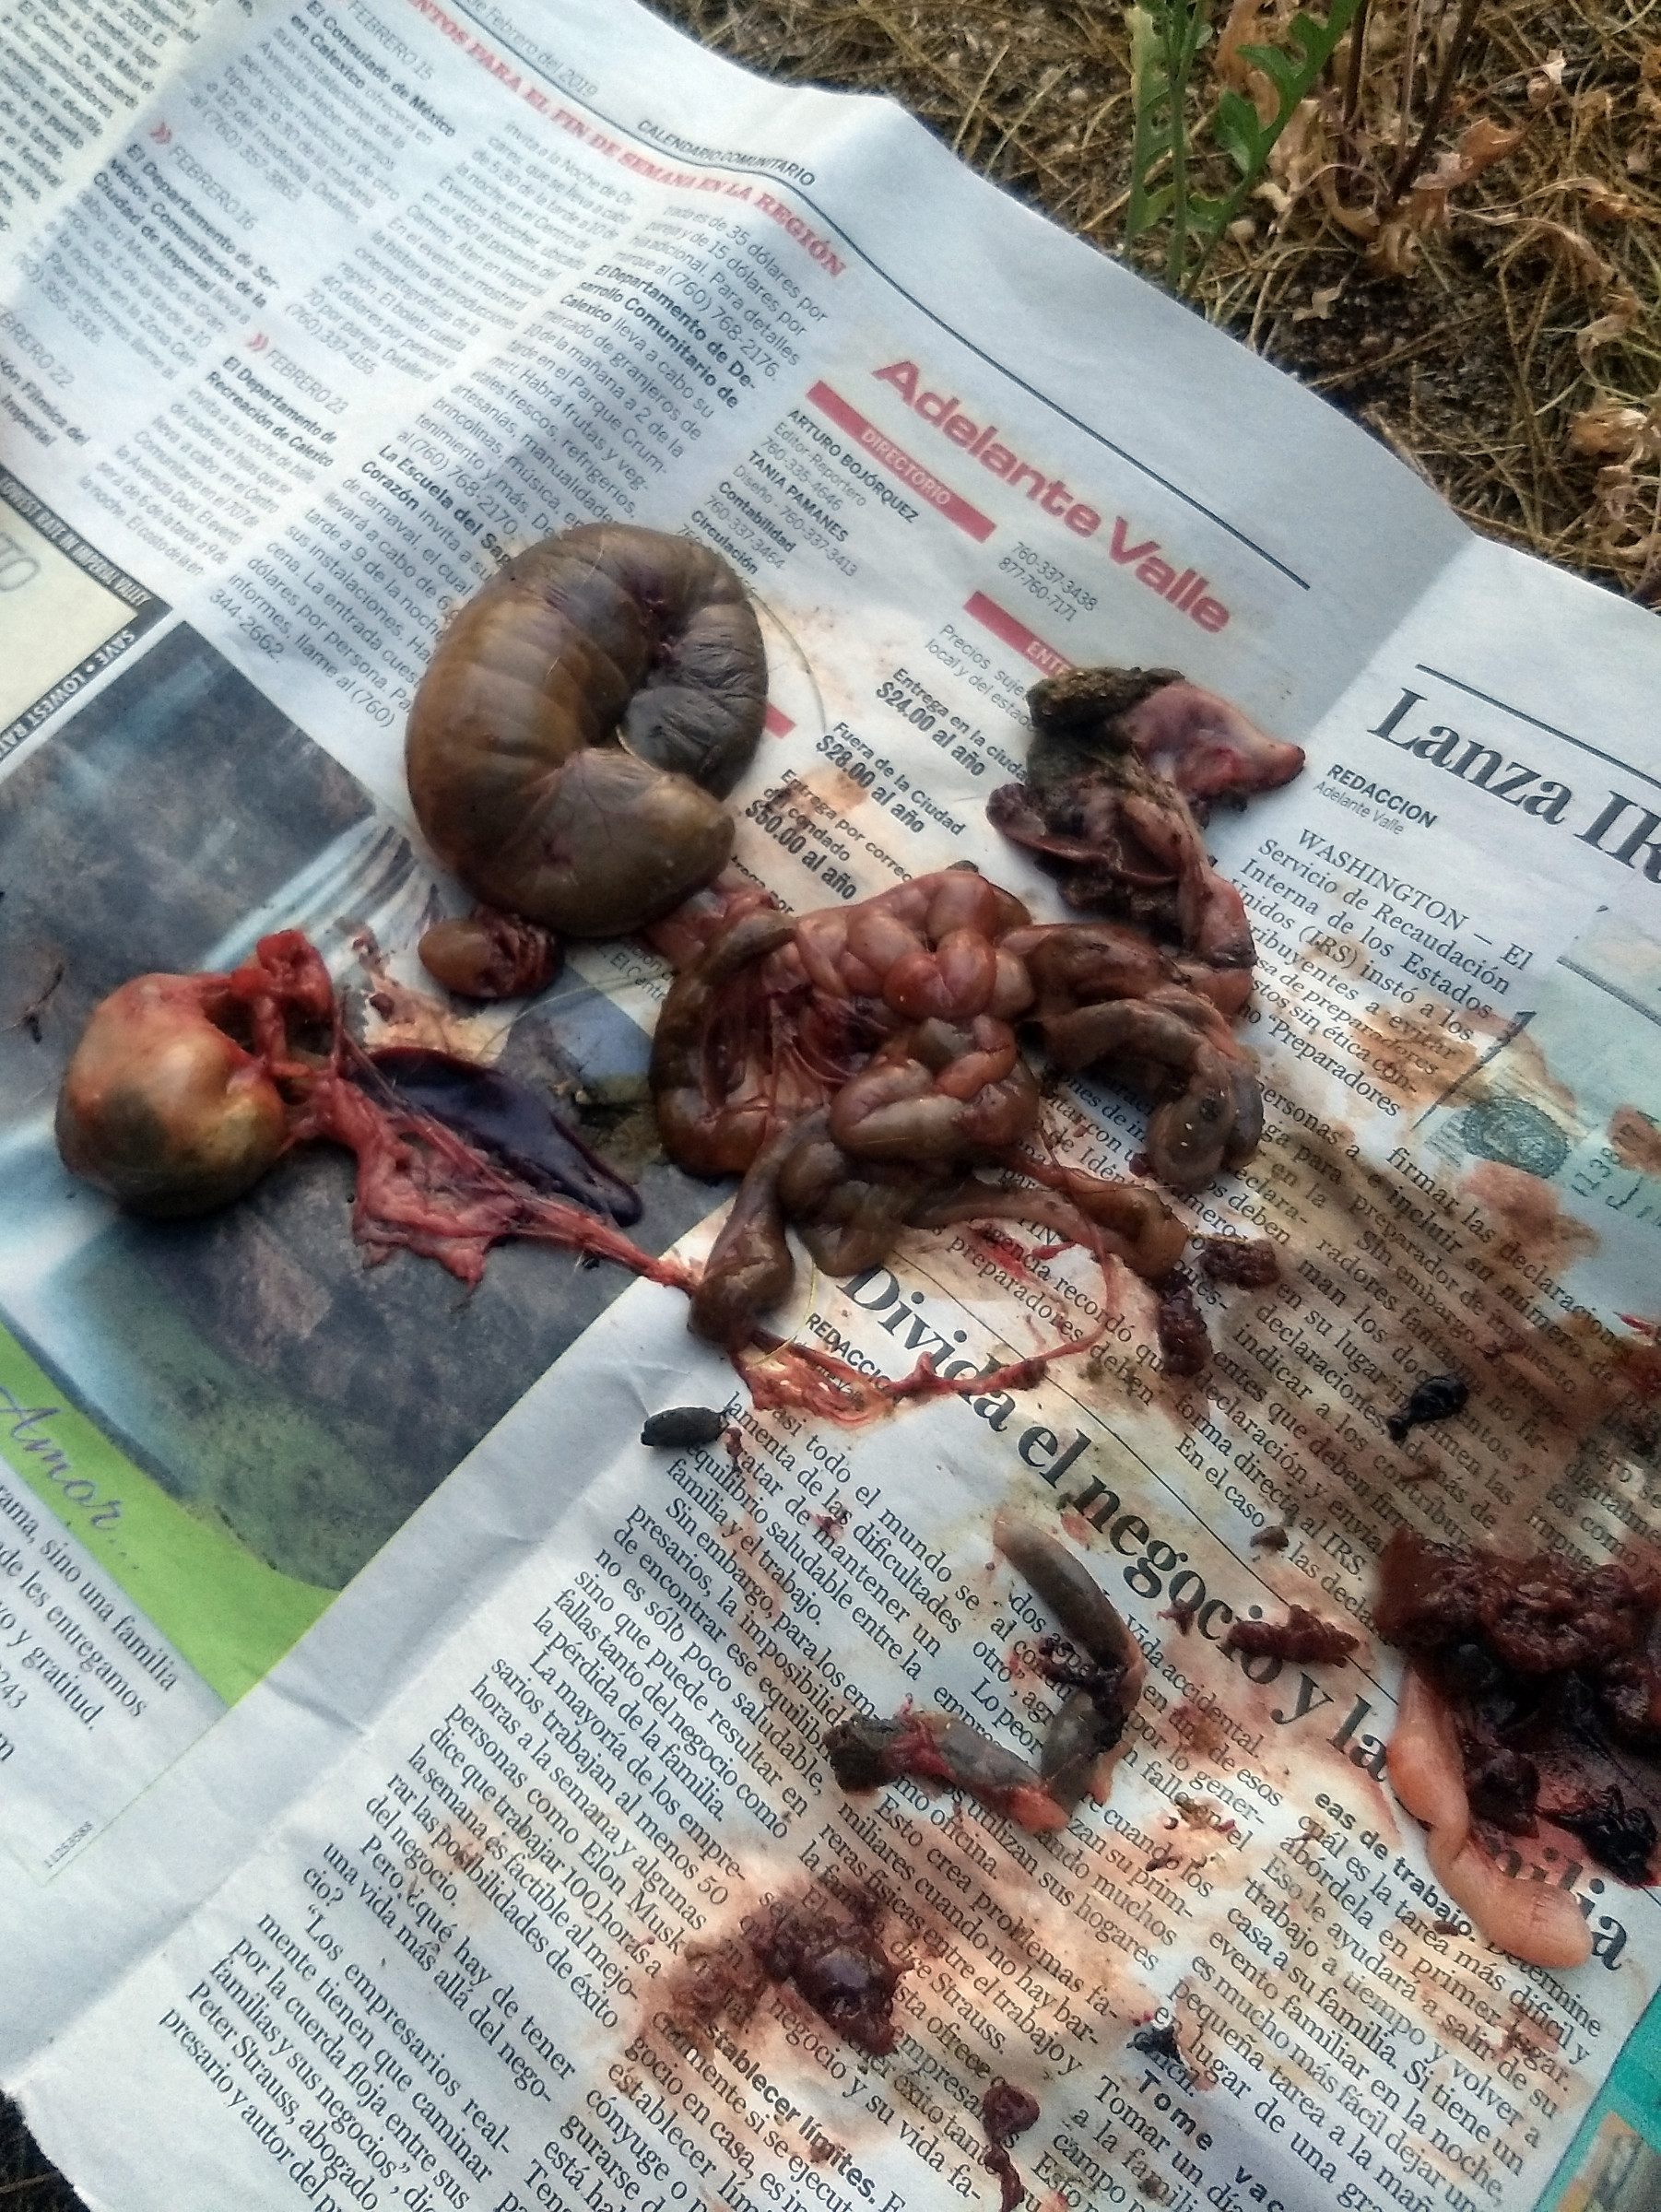 The squirrel's guts